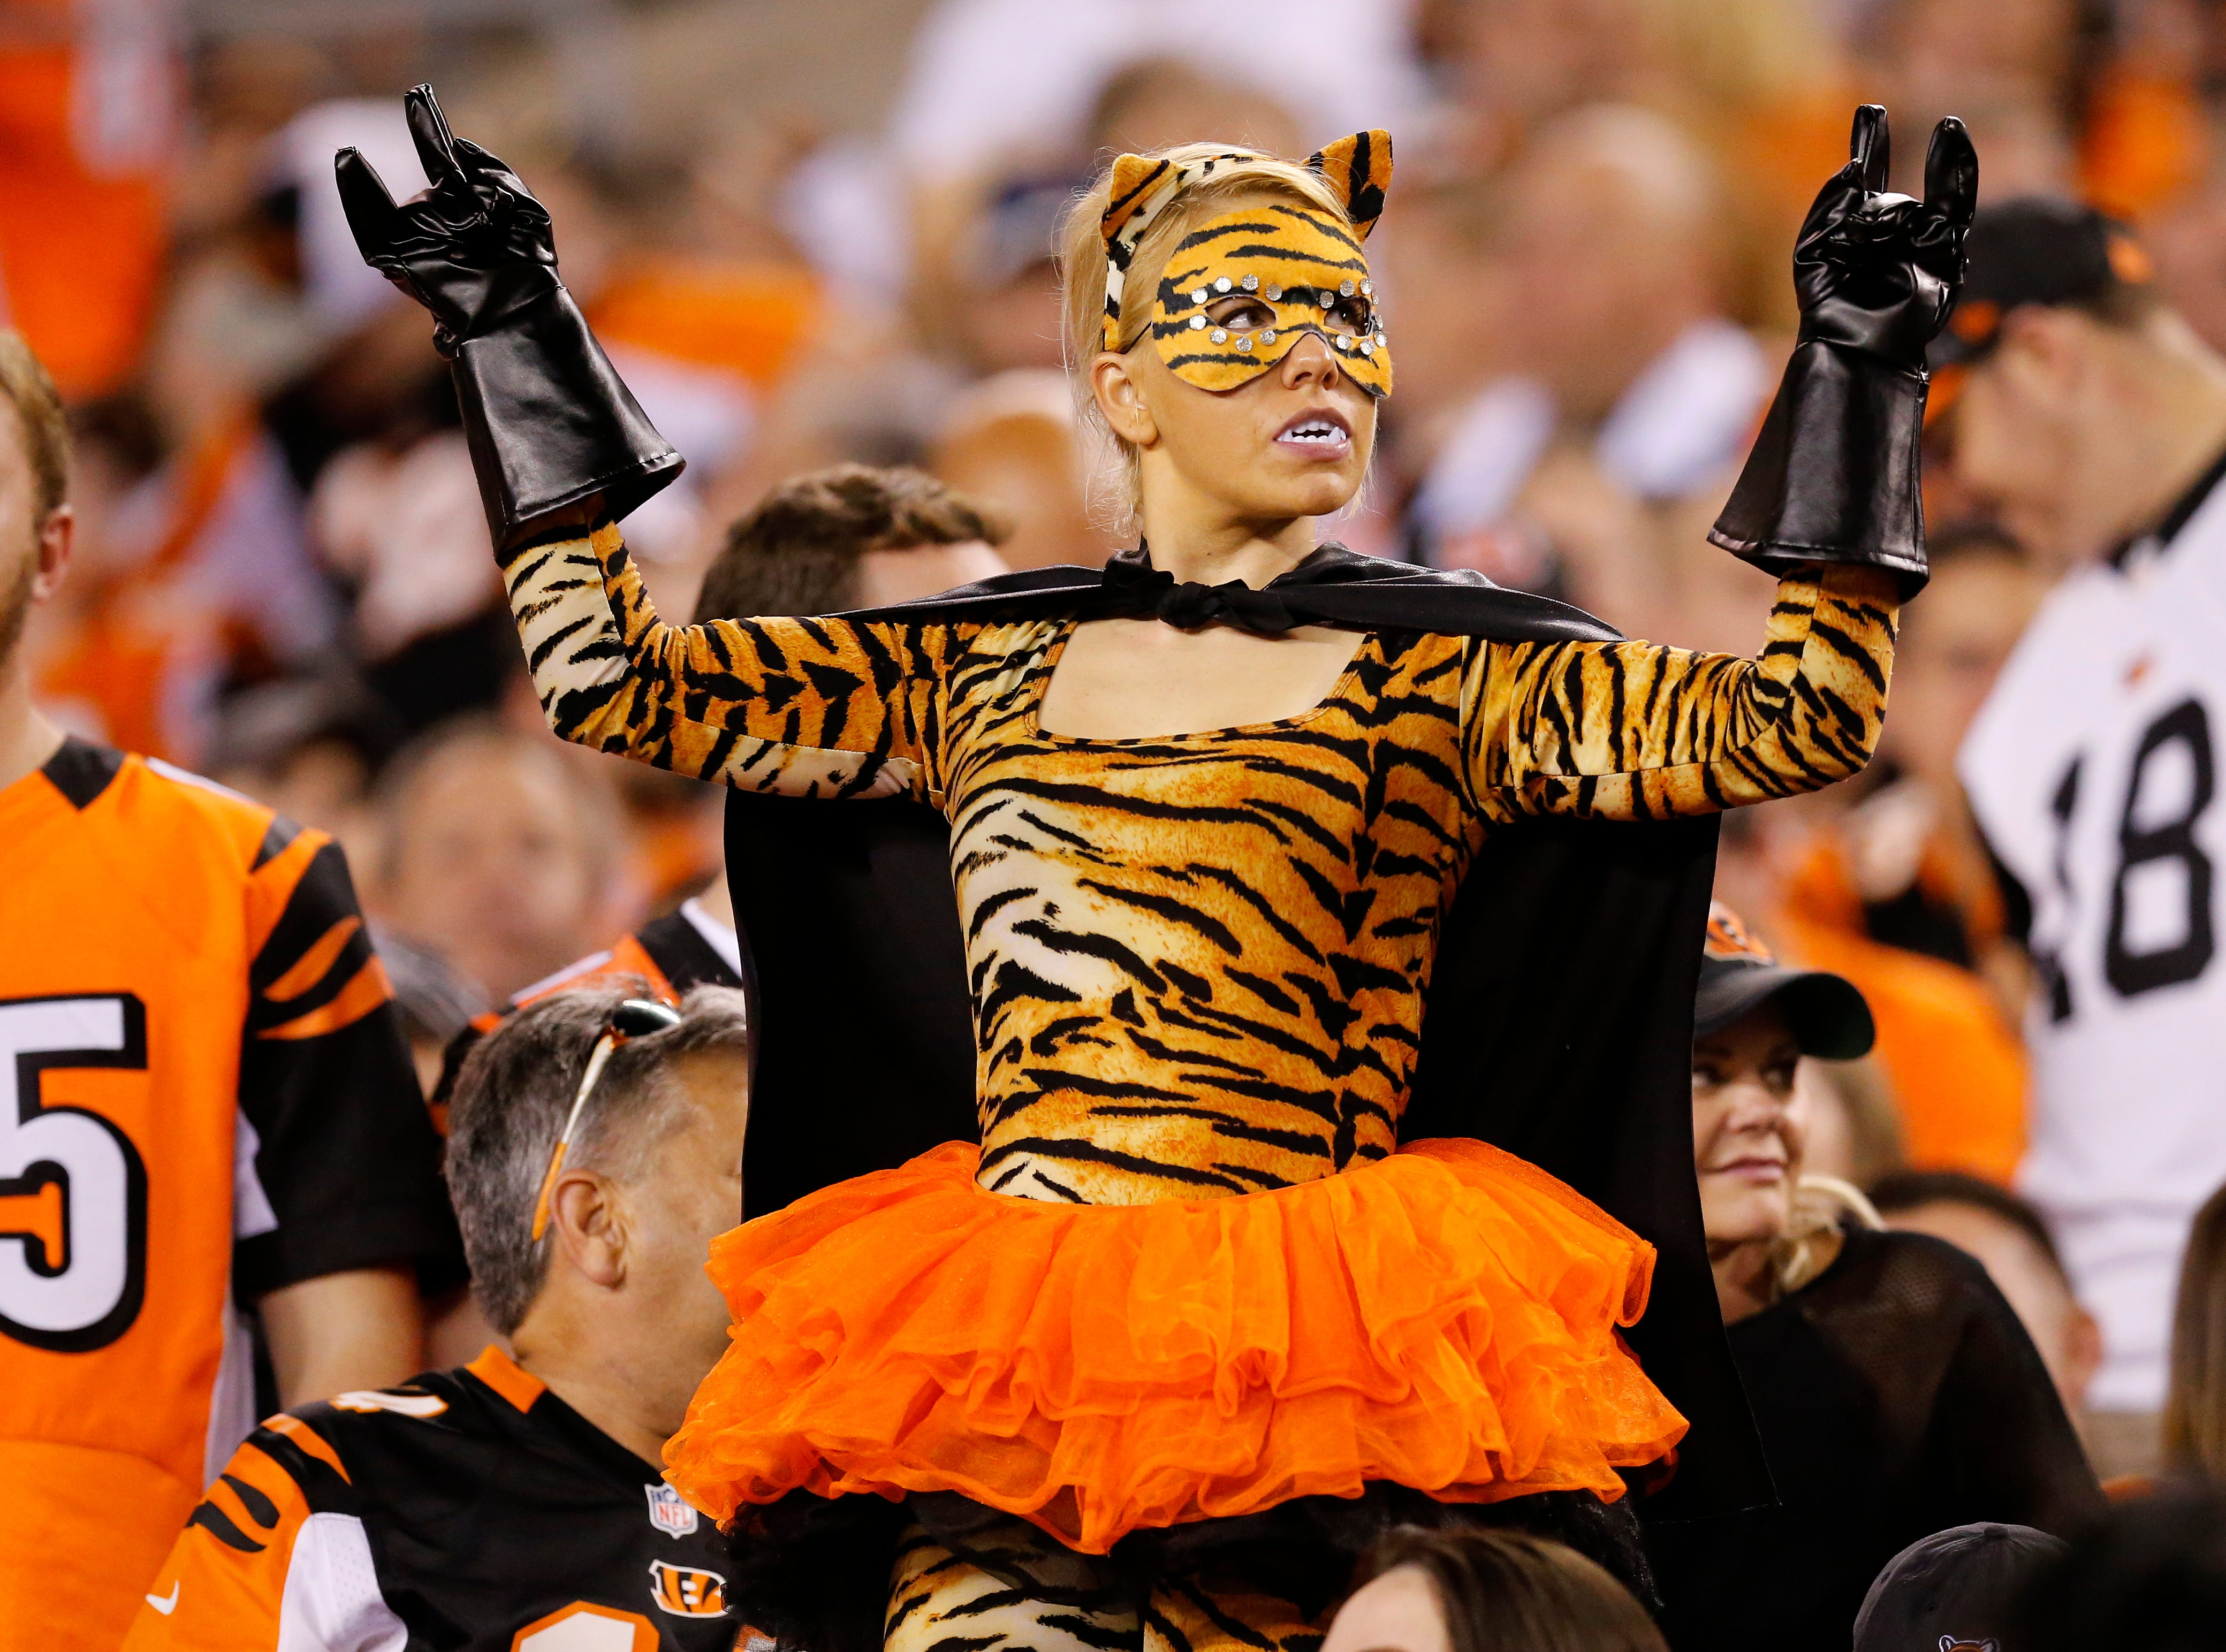 A costumed Bengals fan dances in the stands during the fourth quarter of the NFL Week 2 game between the Cincinnati Bengals and the Baltimore Ravens at Paul Brown Stadium in downtown Cincinnati on Thursday, Sept. 13, 2018. The Bengals improved to 2-0 on the season with a 34-23 win over the Ravens.